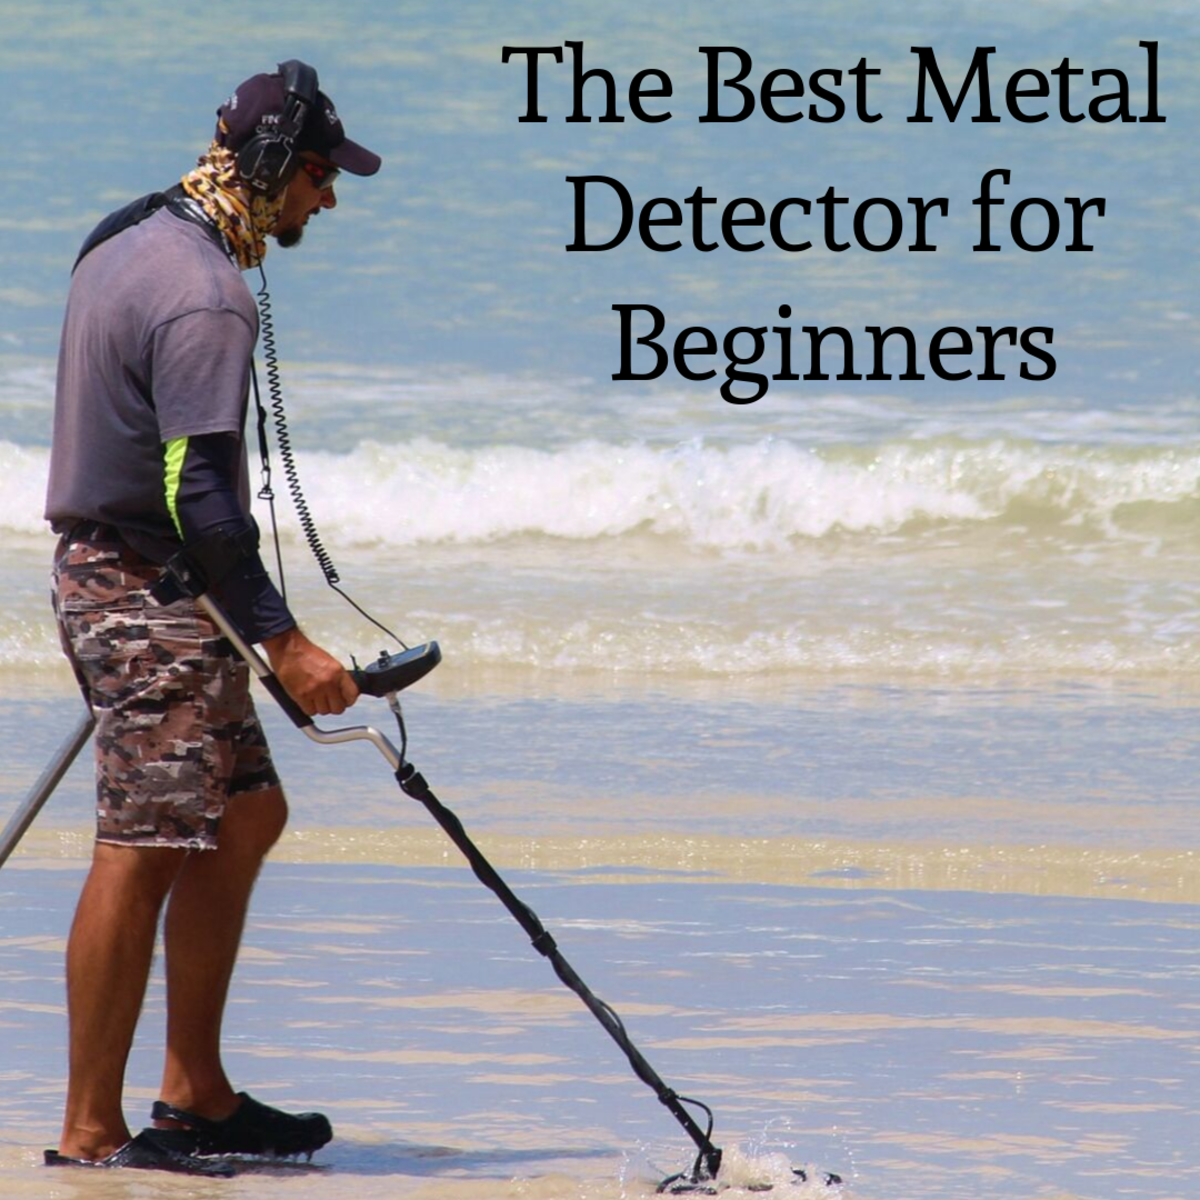 What's the Best Starter Metal Detector for Beginners?